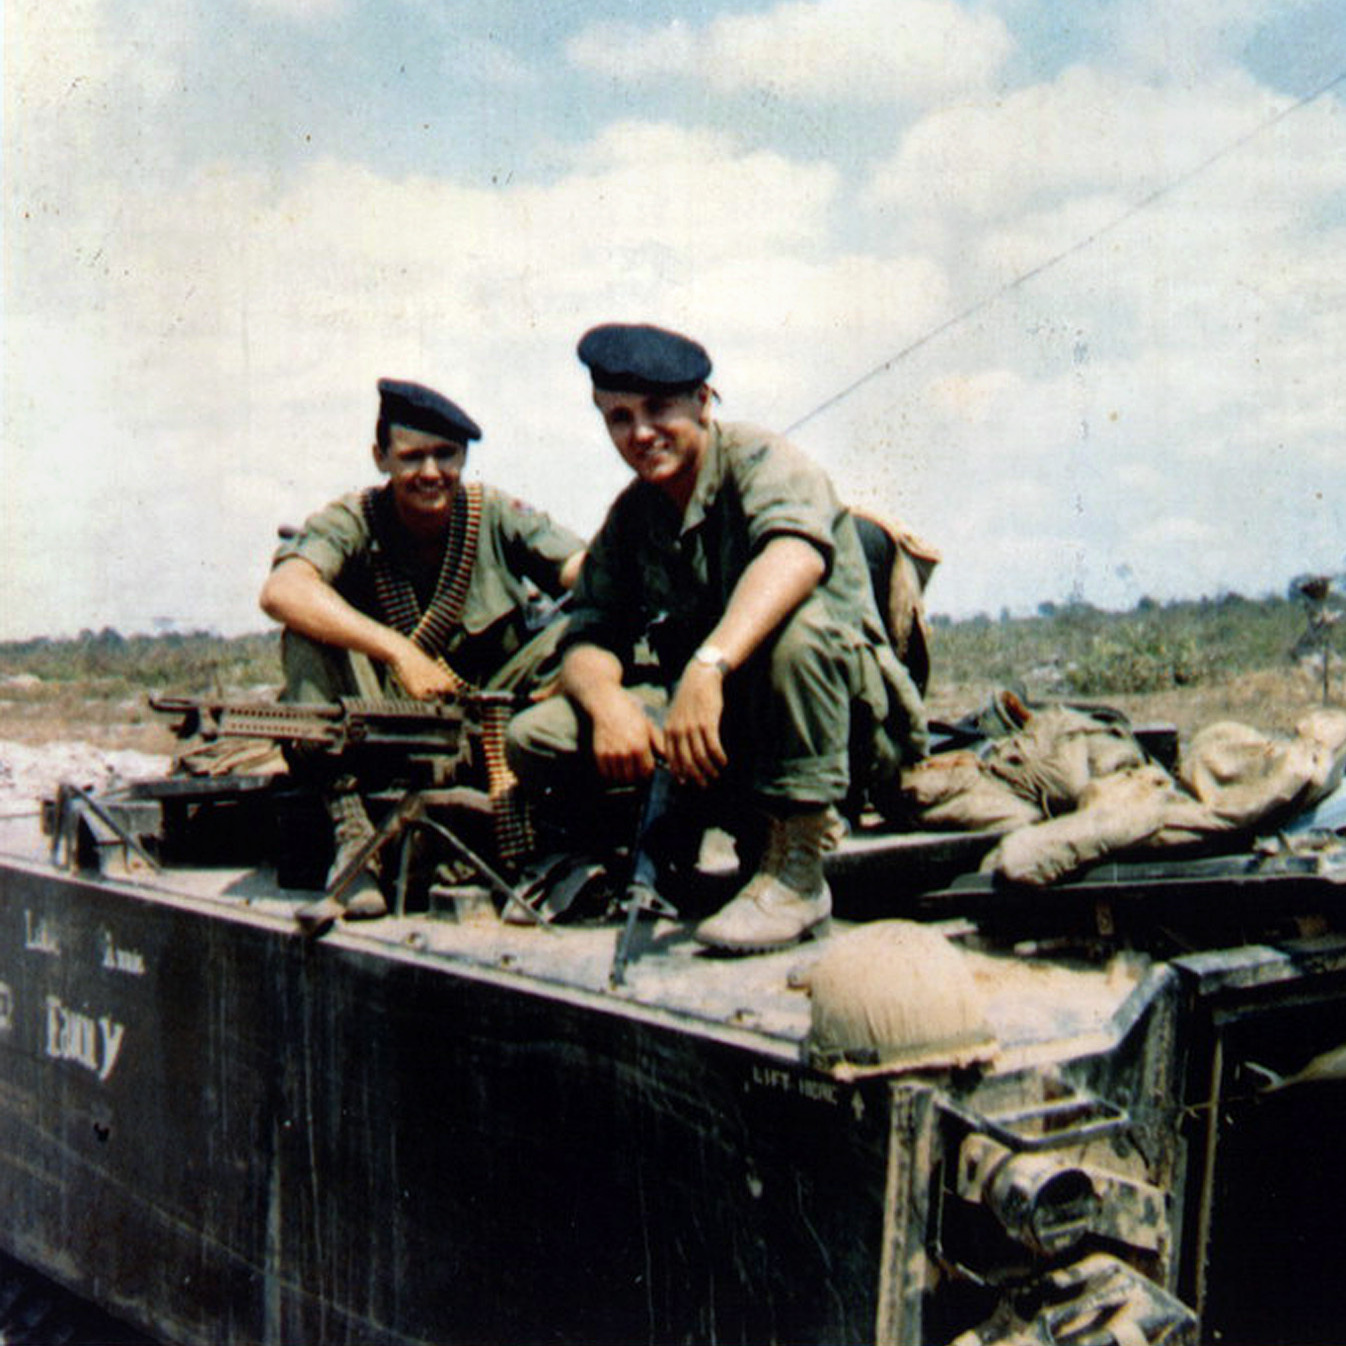 Chuck Hagel (right) and his younger brother Tom sit atop an armored personnel carrier in Vietnam, in a photo taken in or around 1968. The Hagel brothers were squad leaders with the U.S. Army's 9th Infantry Division in the Mekong River Delta.